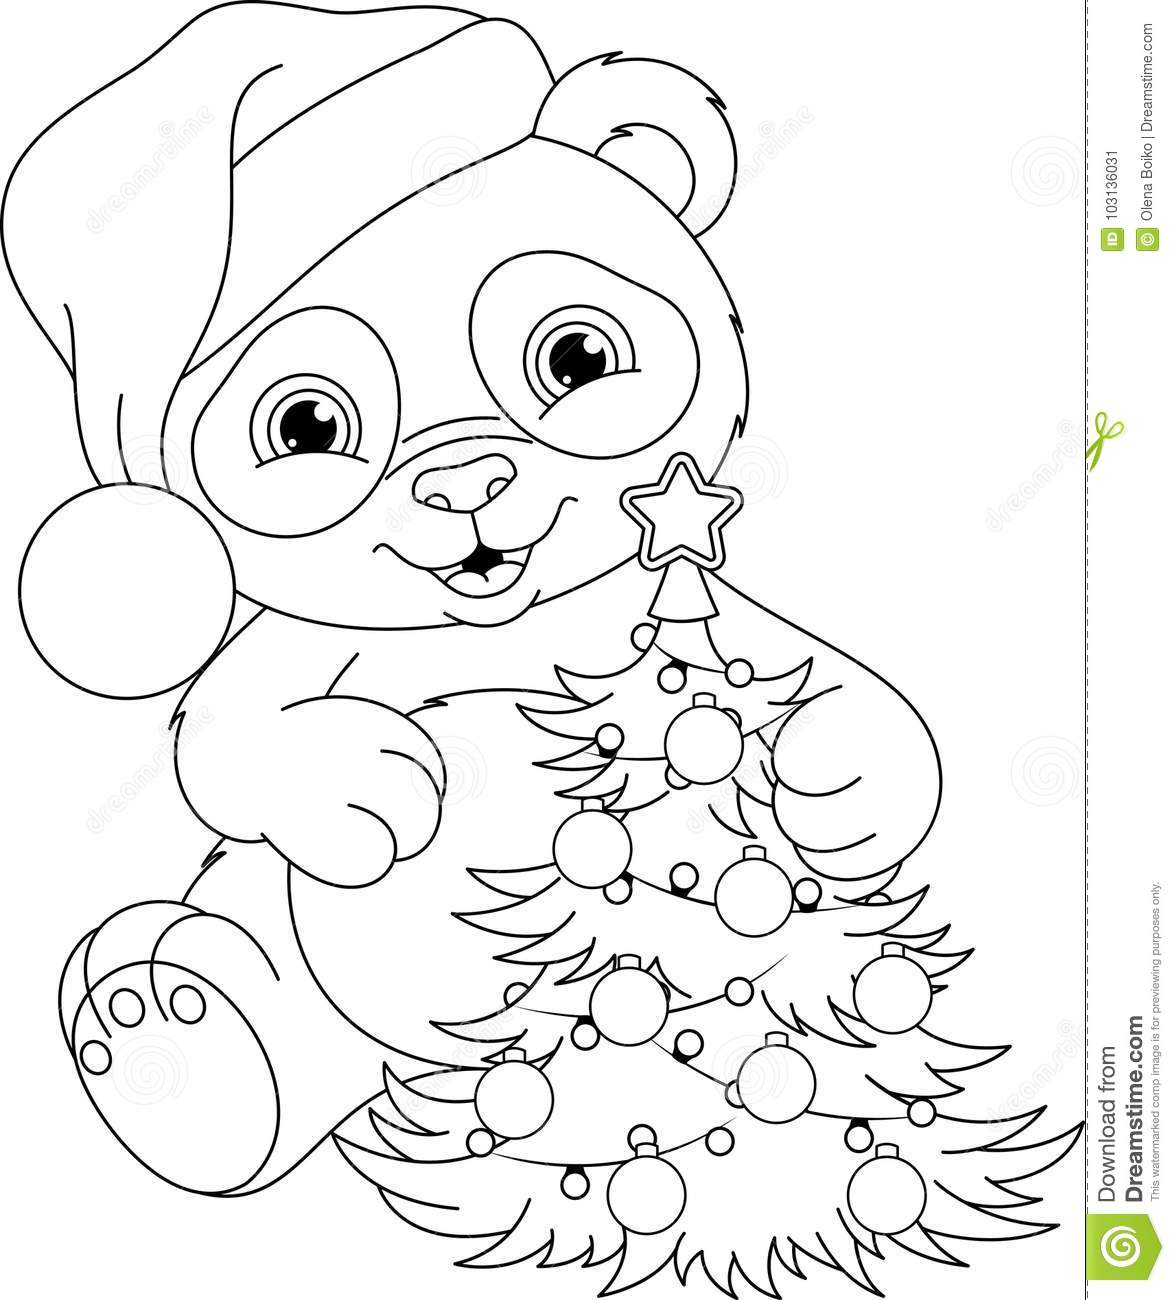 - Panda Christmas Coloring Page Stock Vector - Illustration Of Year